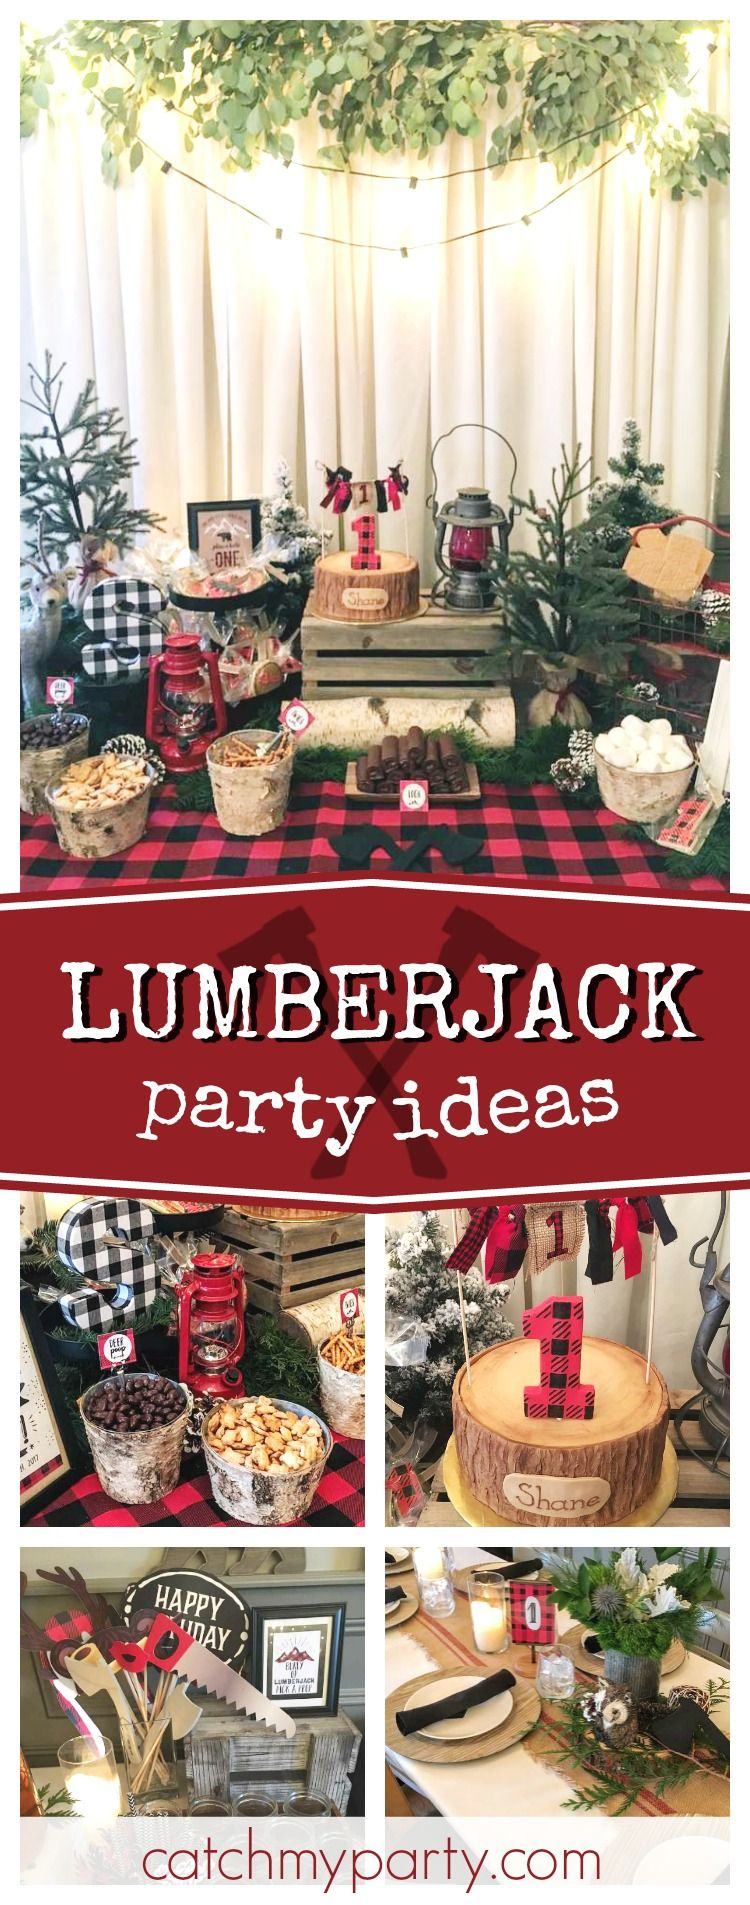 Take a look at this fun Lumberjack 1st birthdayparty! The log birthday cake is so cool!! See more party ideas an dshare yours at CatchMyParty.com  #lumberjack #1stbirthday #boybirthdayparties